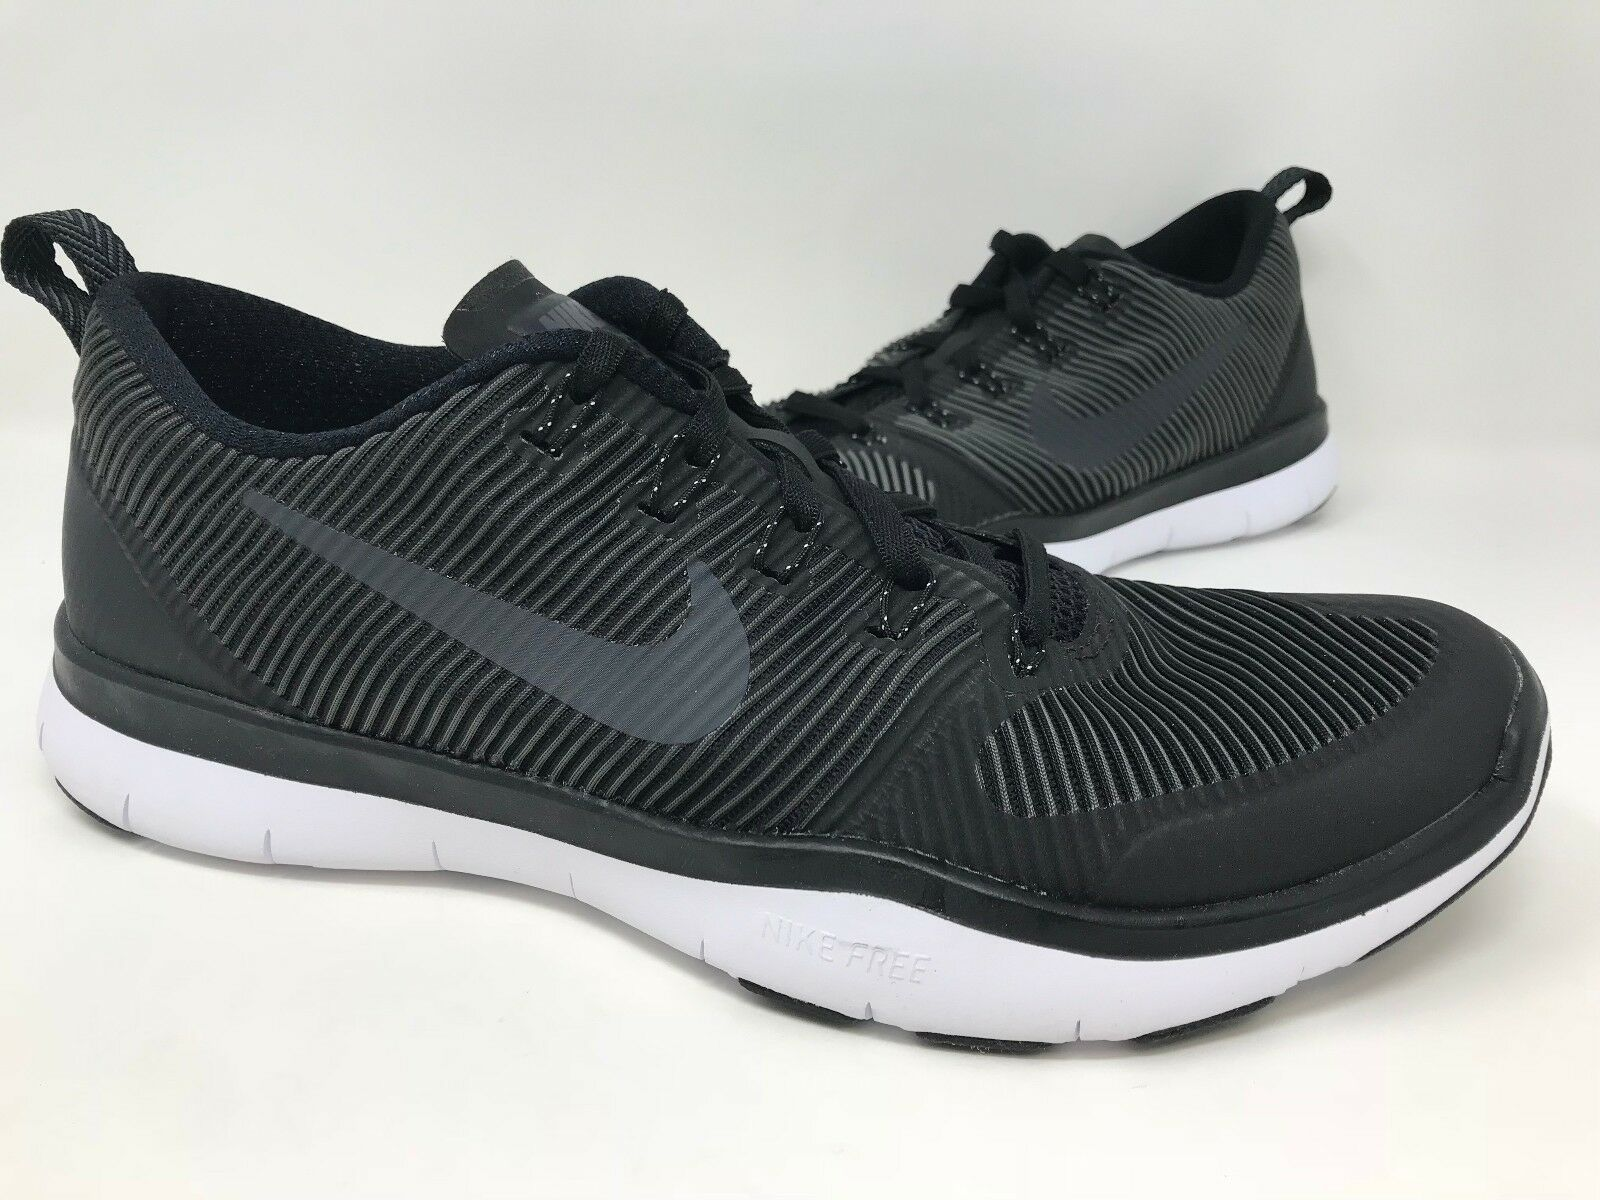 New! Men's Nike 833258-001 Free Train Versatility Training Shoes - Blk/Wht A10